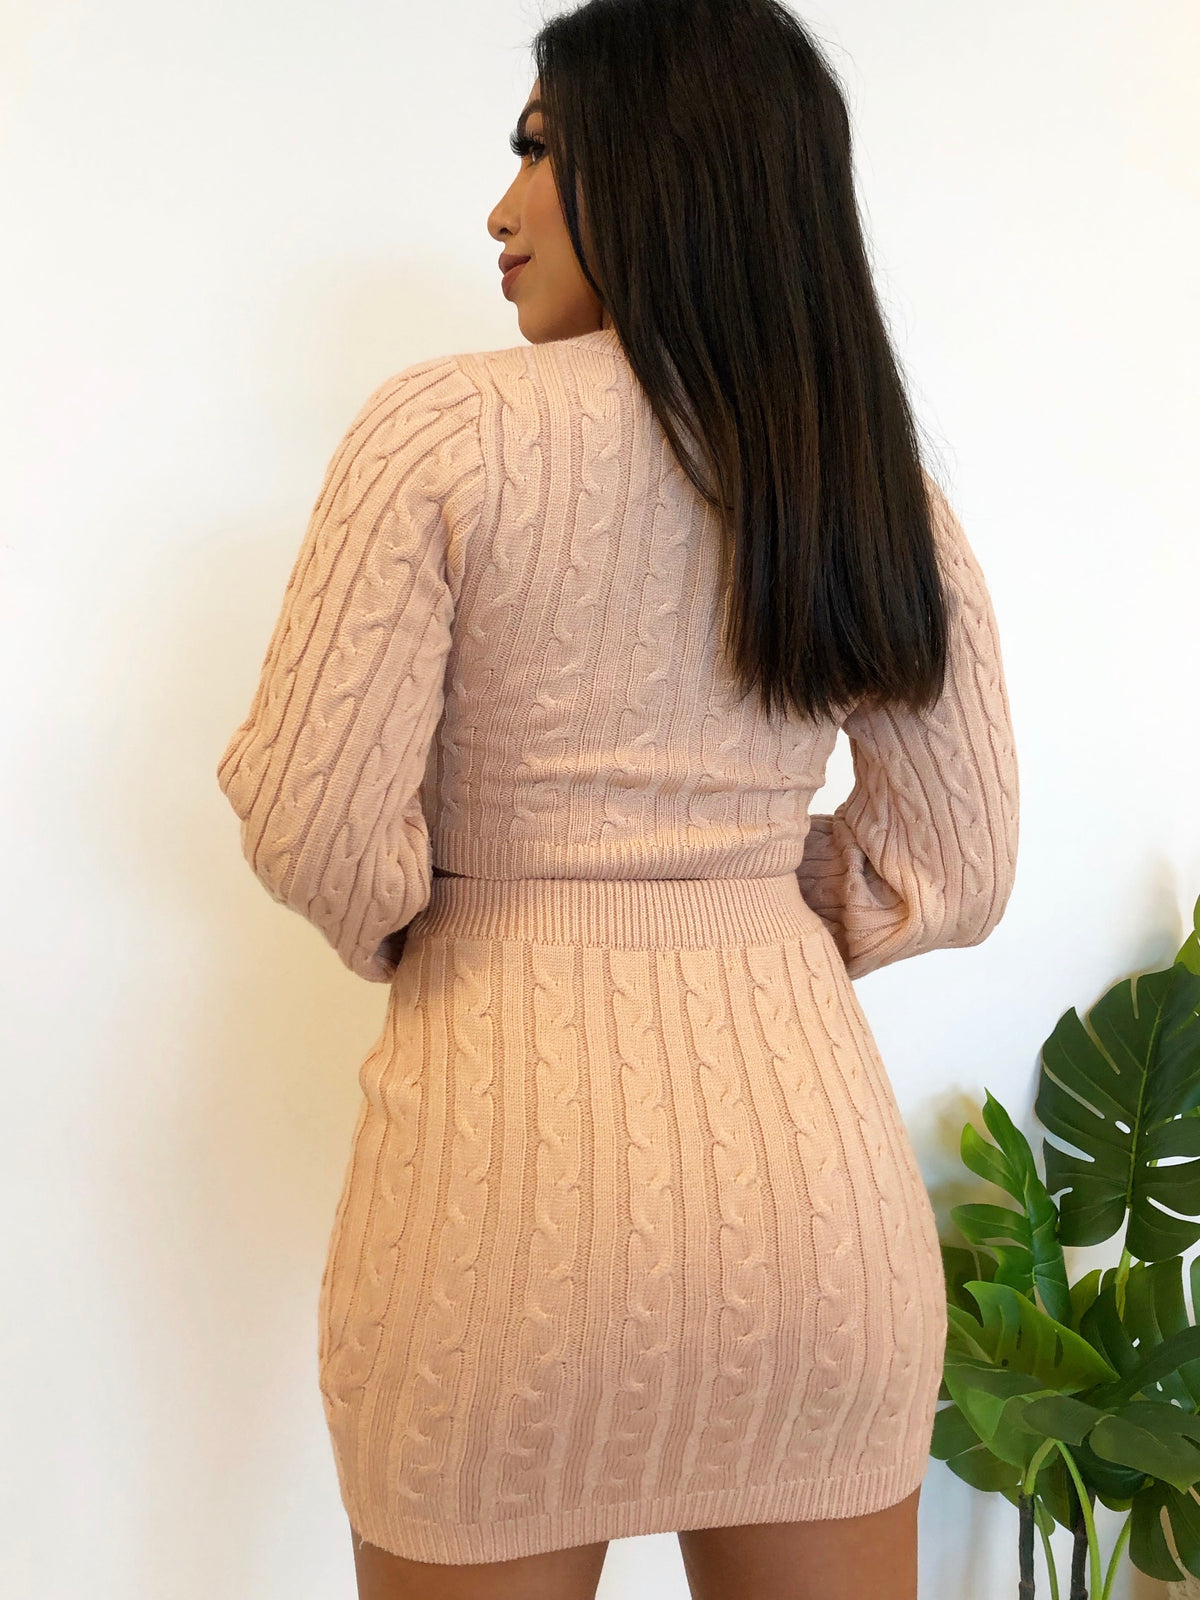 blush 2 piece, long sleeve, high waist skirt, crop top, knit 2 piece, v cut